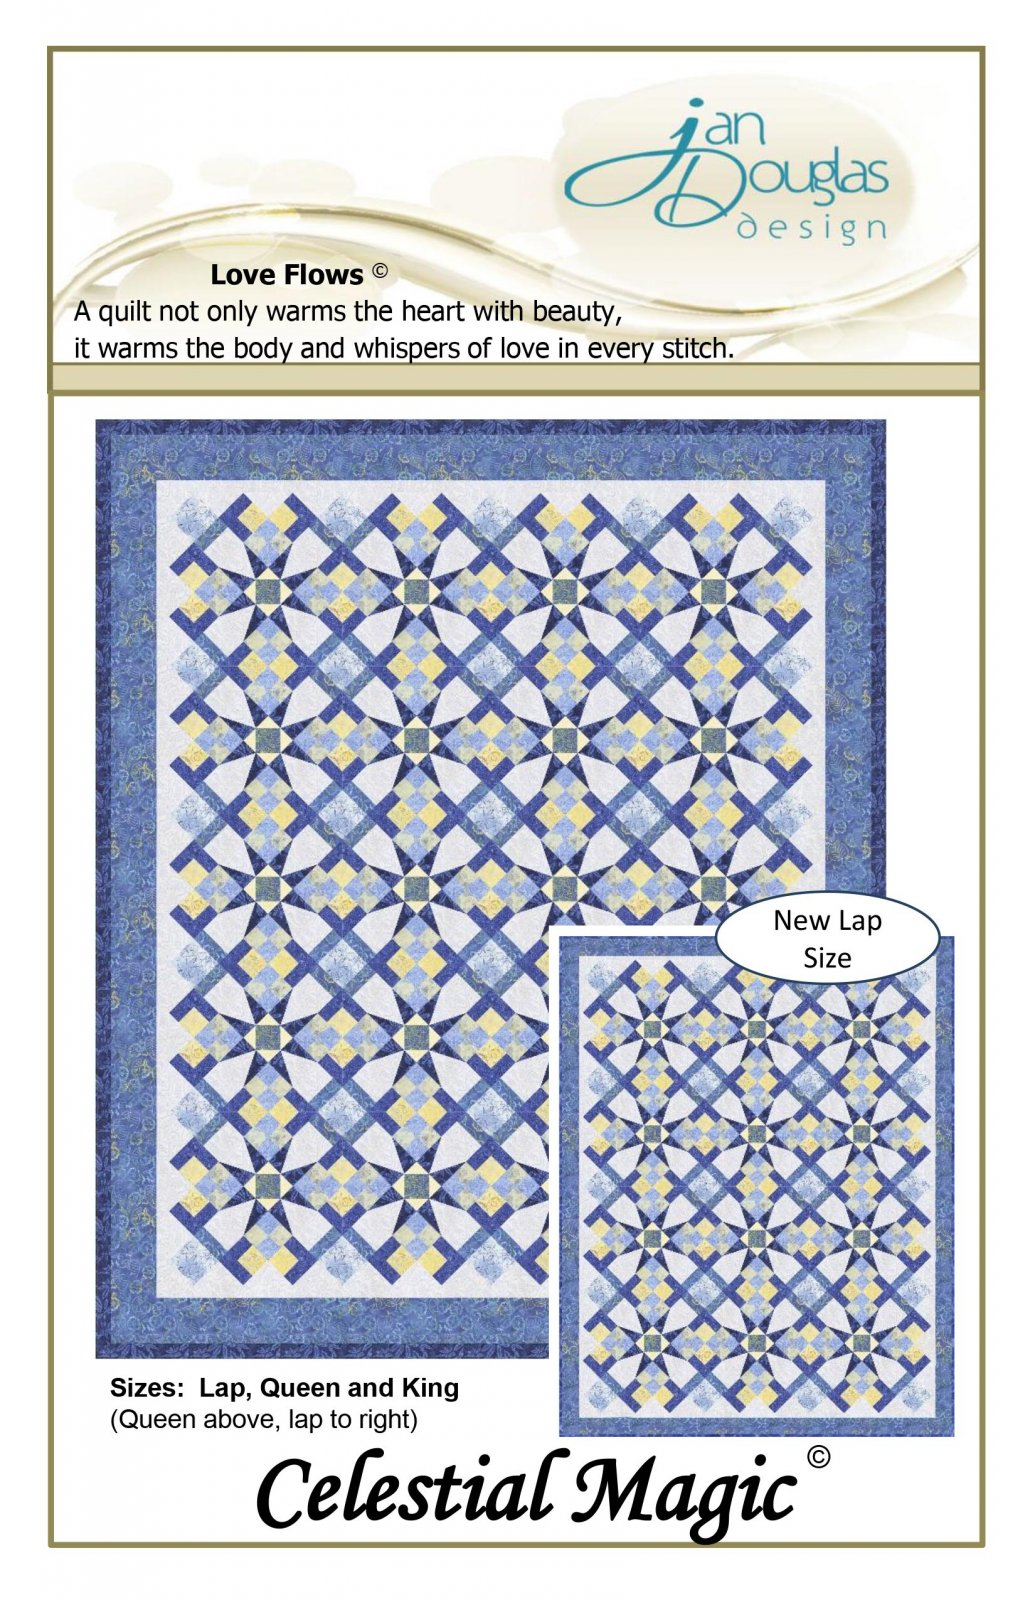 Celestial Magic Pattern - Including New Lap Size